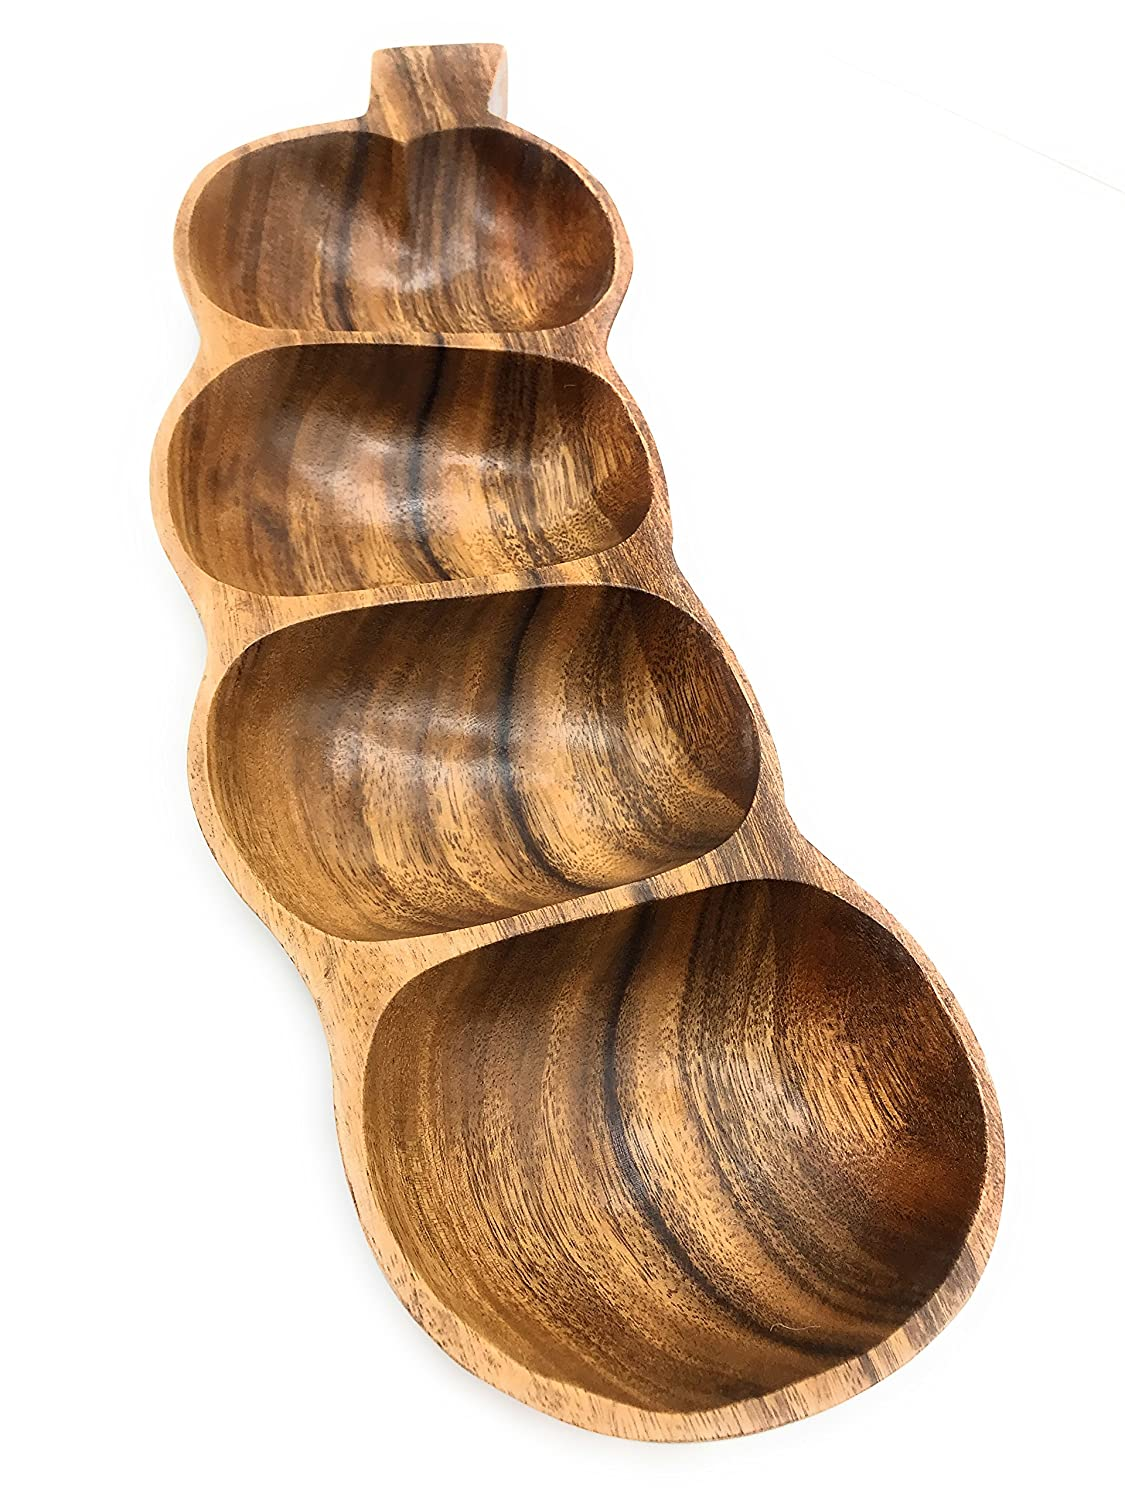 Acacia Wood Tamarind-Shaped Tray with 4 Sections, 17